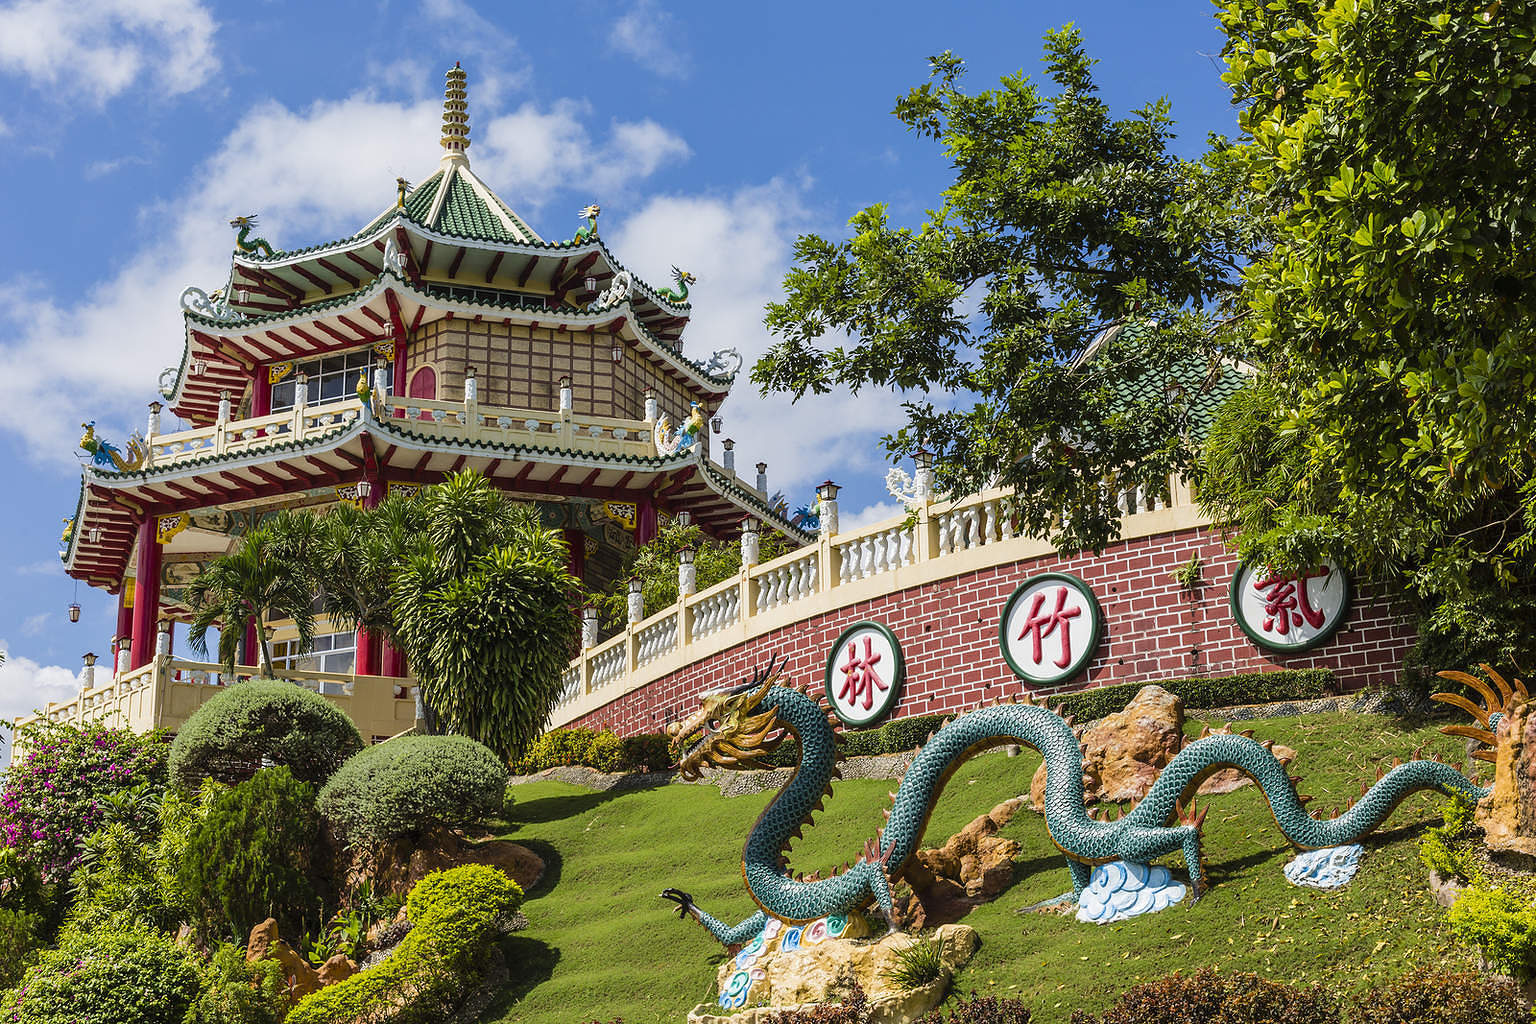 Pagoda And Dragon Sculpture Of The Taoist Temple In Cebu, Philip